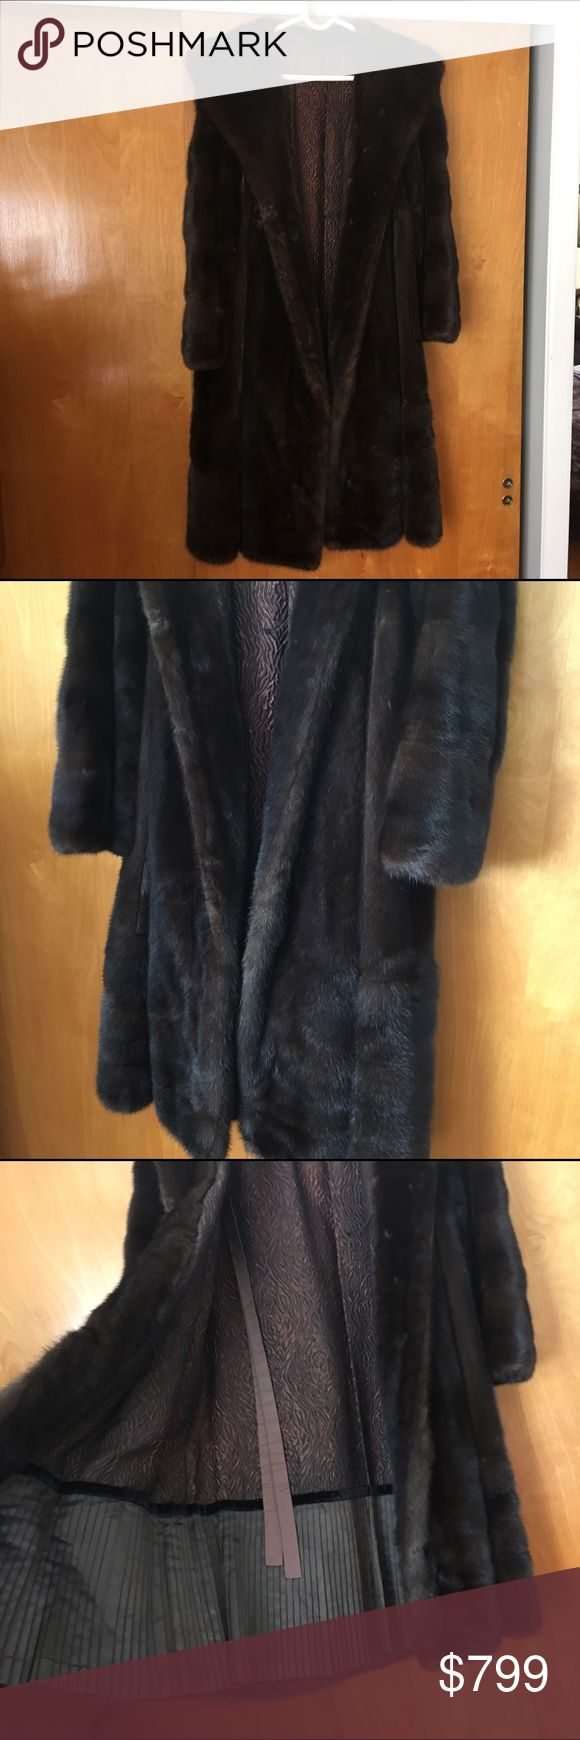 Mink fur coat Pristine women's knee length mink coat !! 100% real mink !! The overall condition is excellent. It fits like a size 6US. the only thing wrong with it is the little loop inside for the button. It just needs to be sewn back in. That's it. Condition is amazing !!! I'm unsure of the year or purchase. This coat looks brand new though ! 45 inches in back length Jackets & Coats